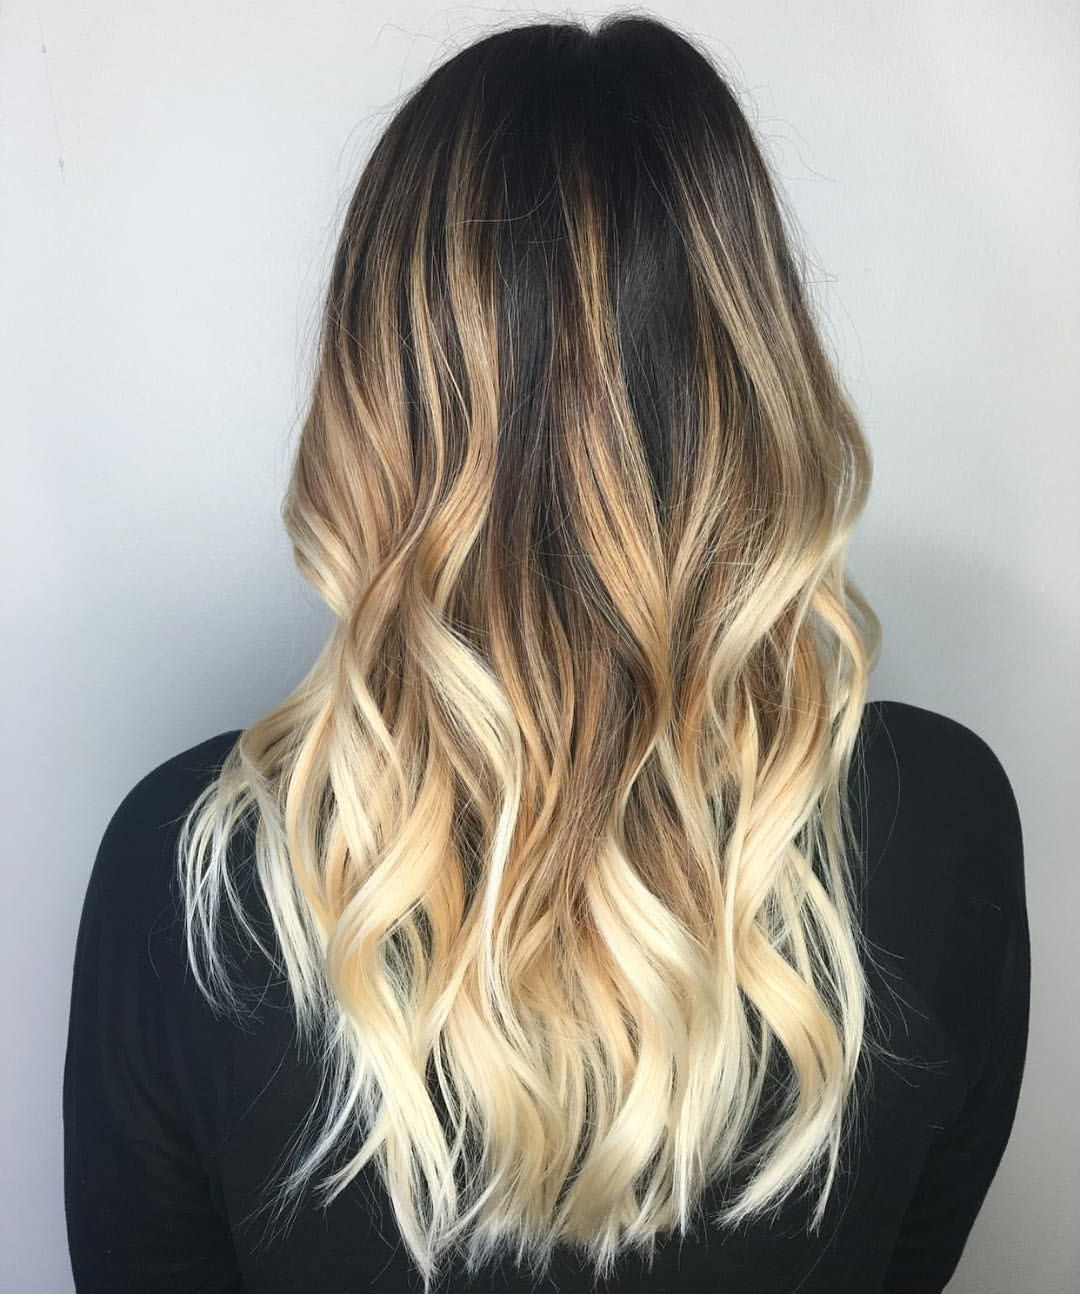 High Contrast Golden Yellow Balayage For Black Brown Hair | Balayage Regarding High Contrast Blonde Balayage Bob Hairstyles (View 19 of 20)